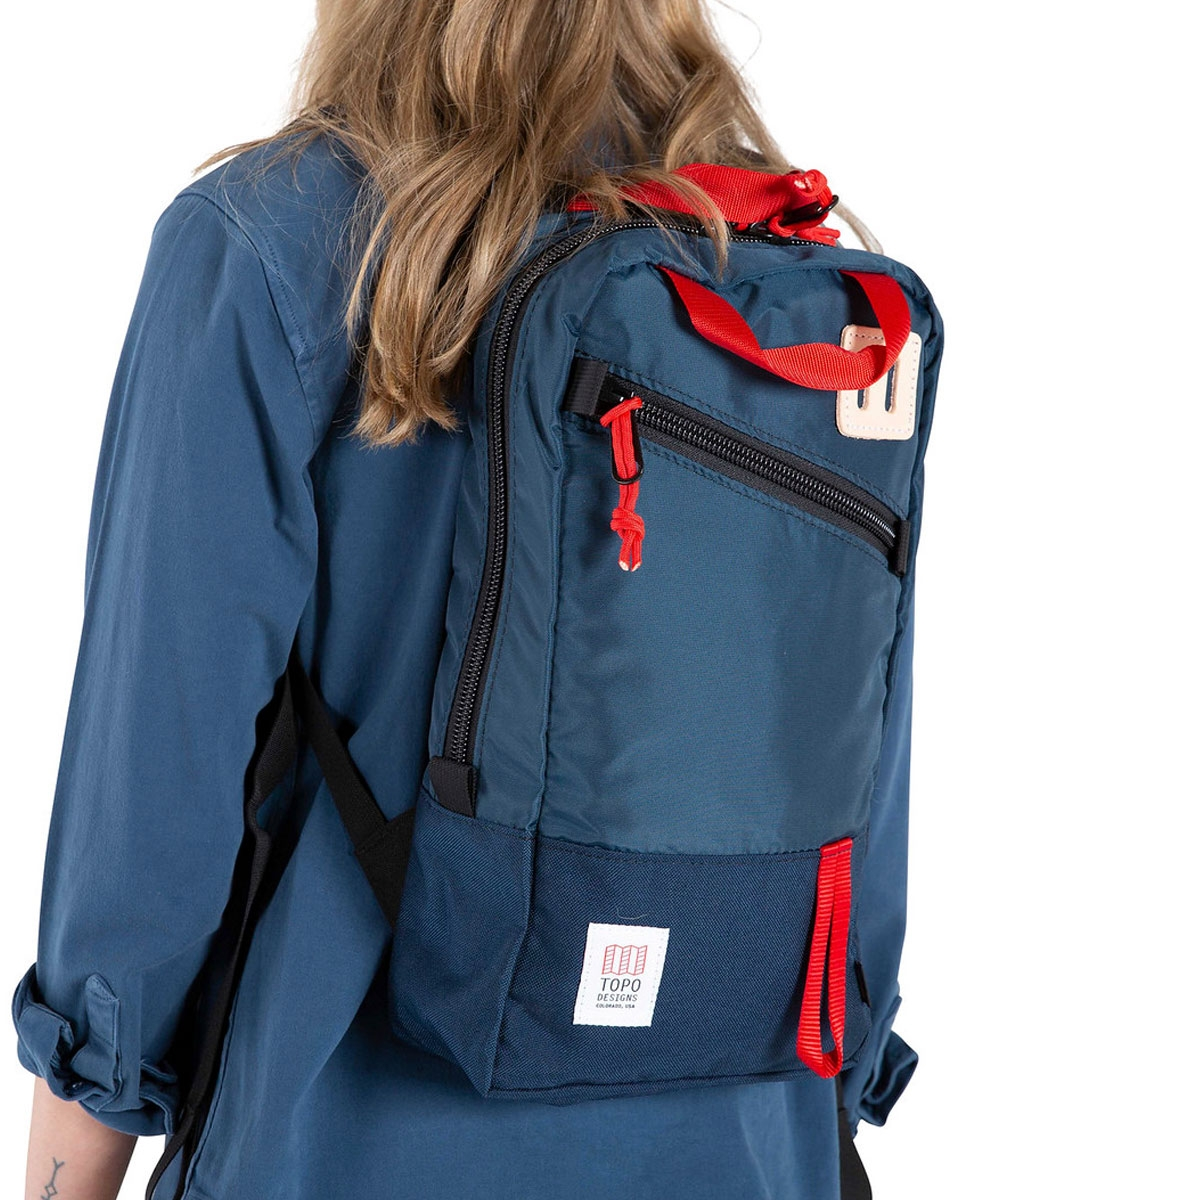 Topo Designs Trip Pack Navy, a must-have travel companion